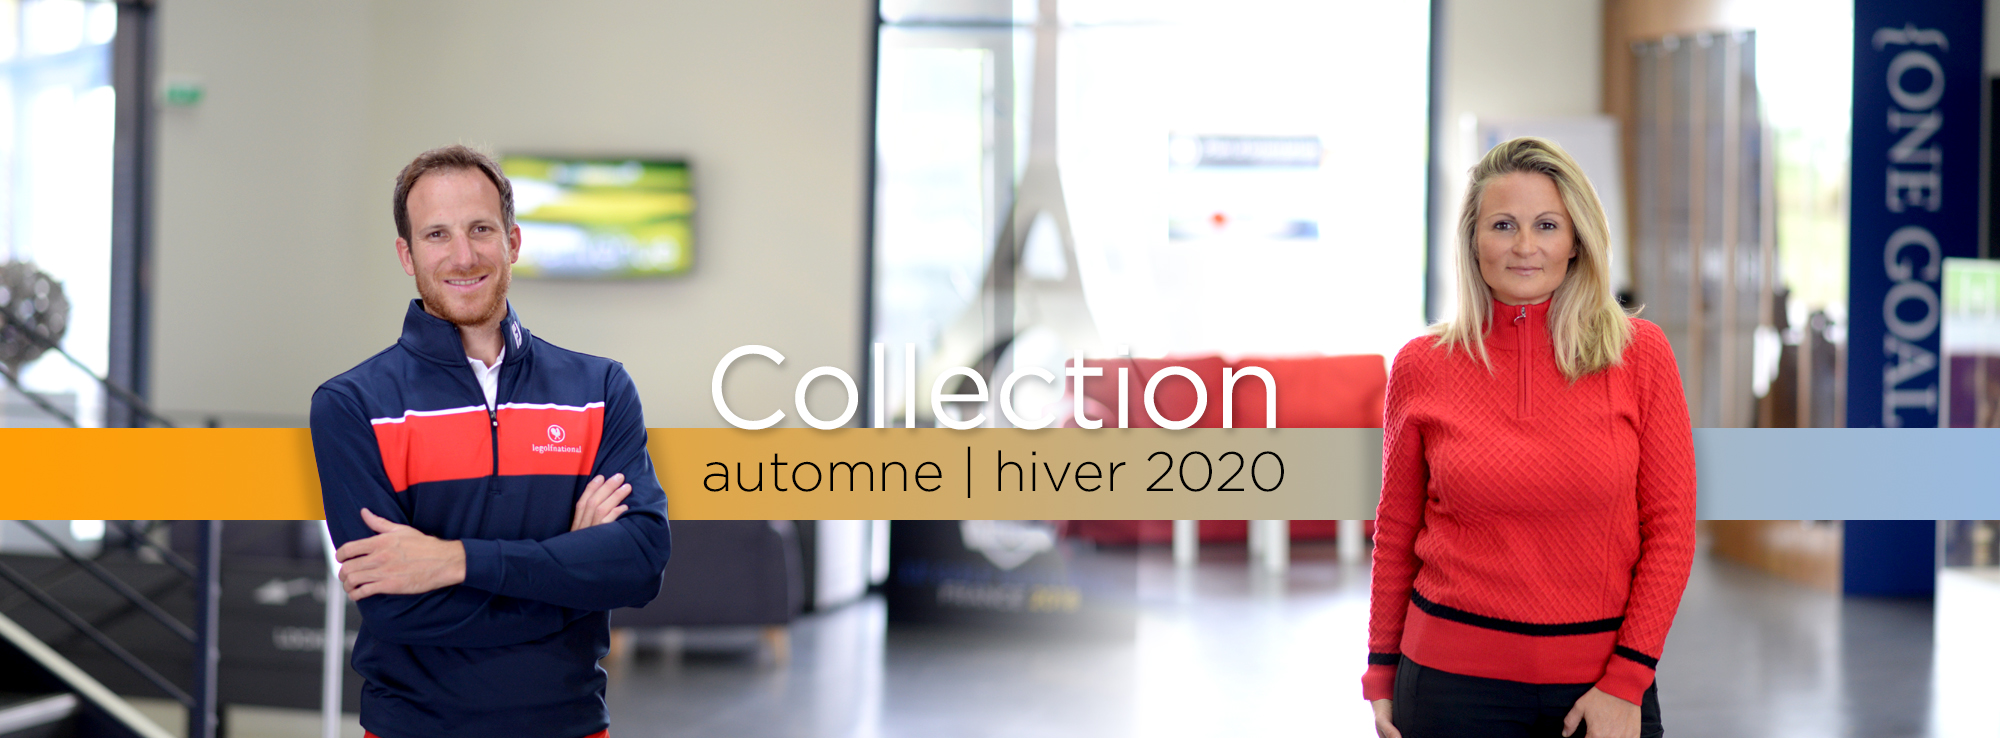 Collection automne hiver 2020